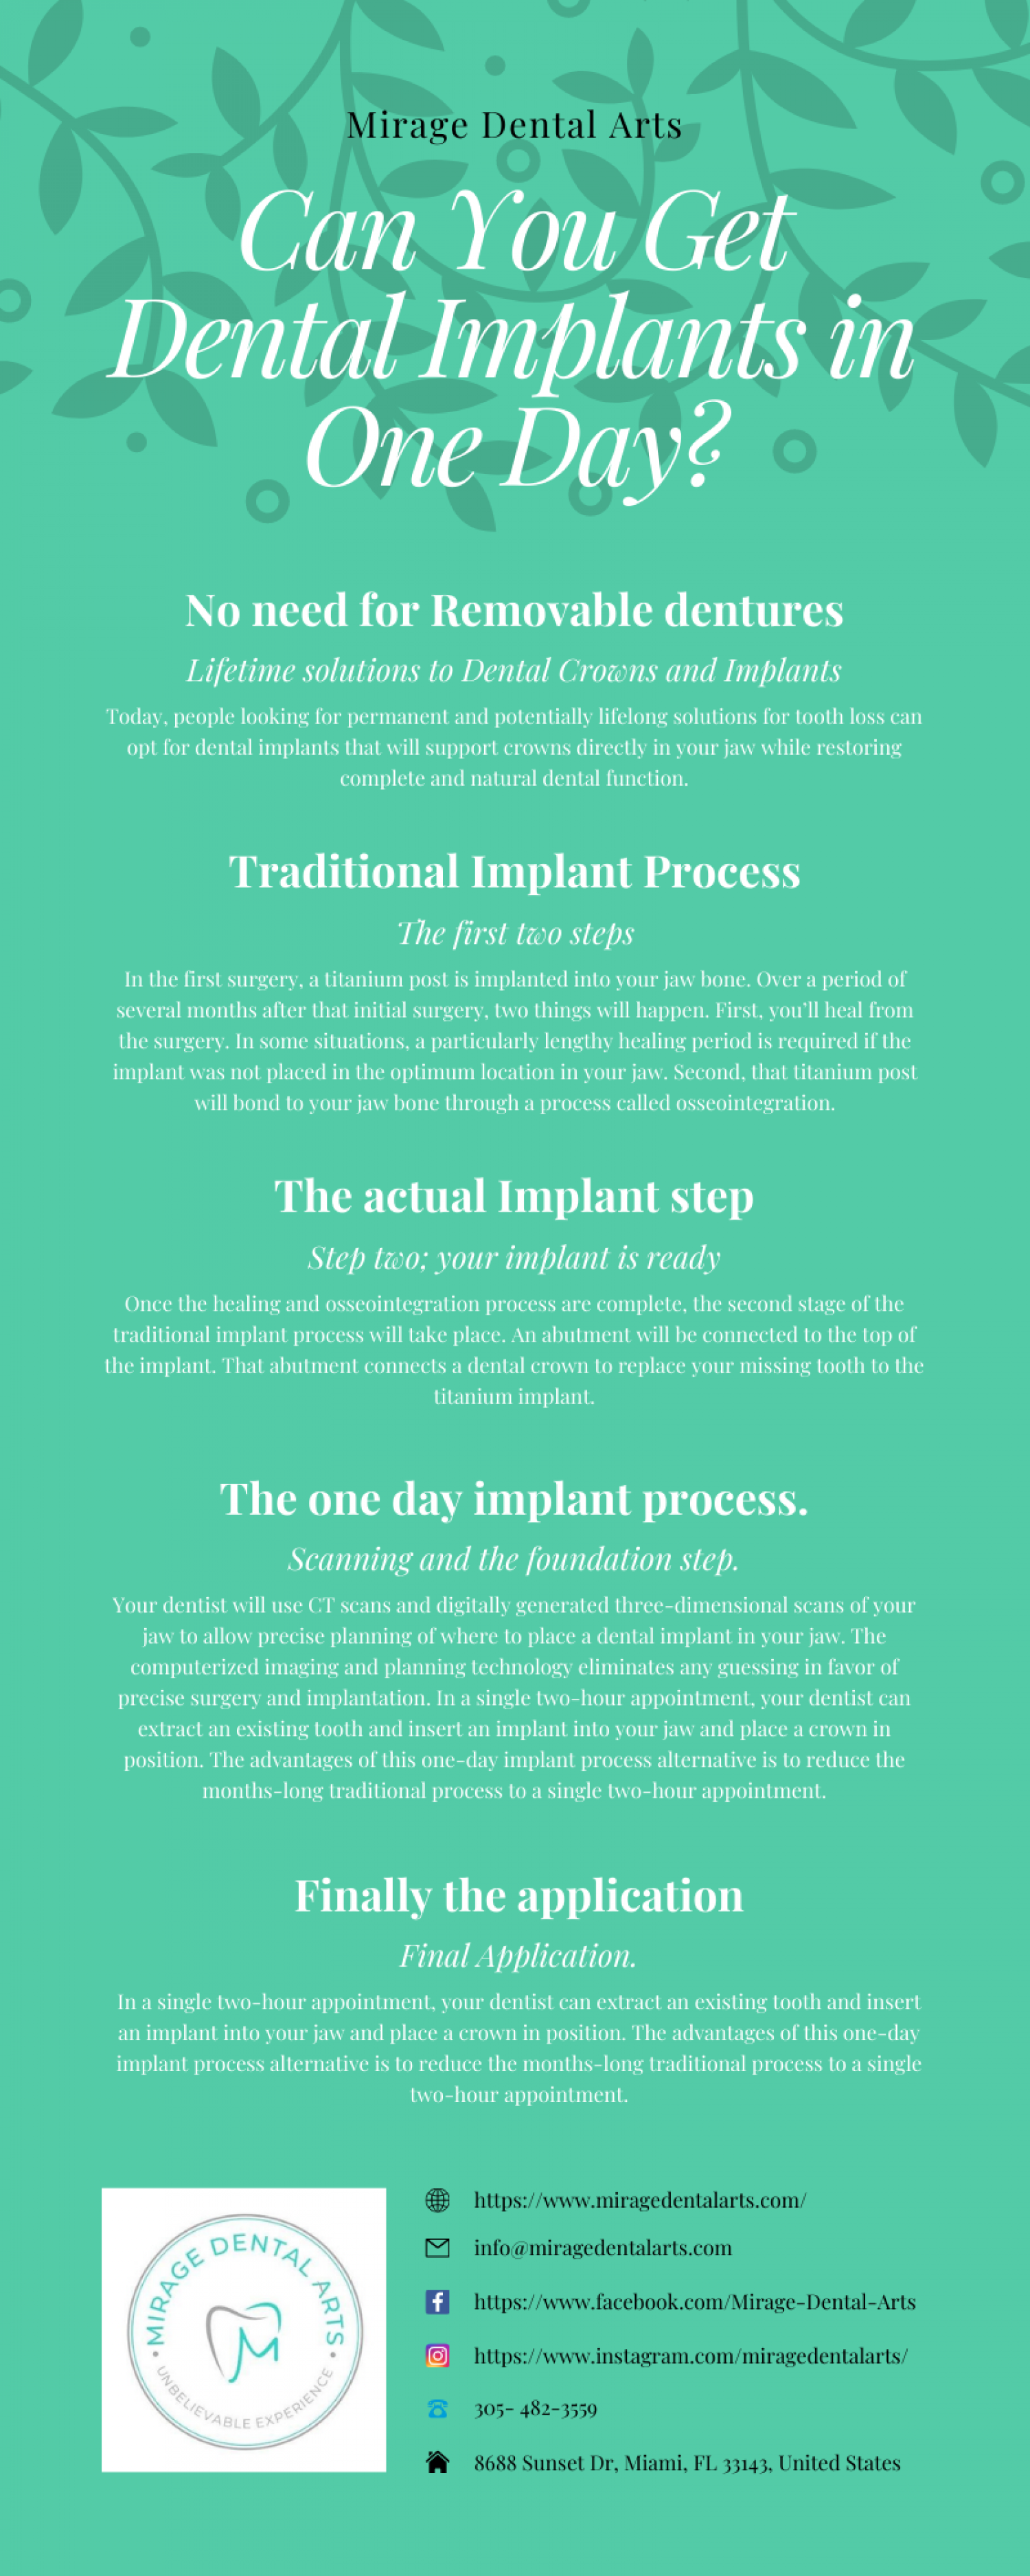 Can You Get Dental Implants In One Day Infographic